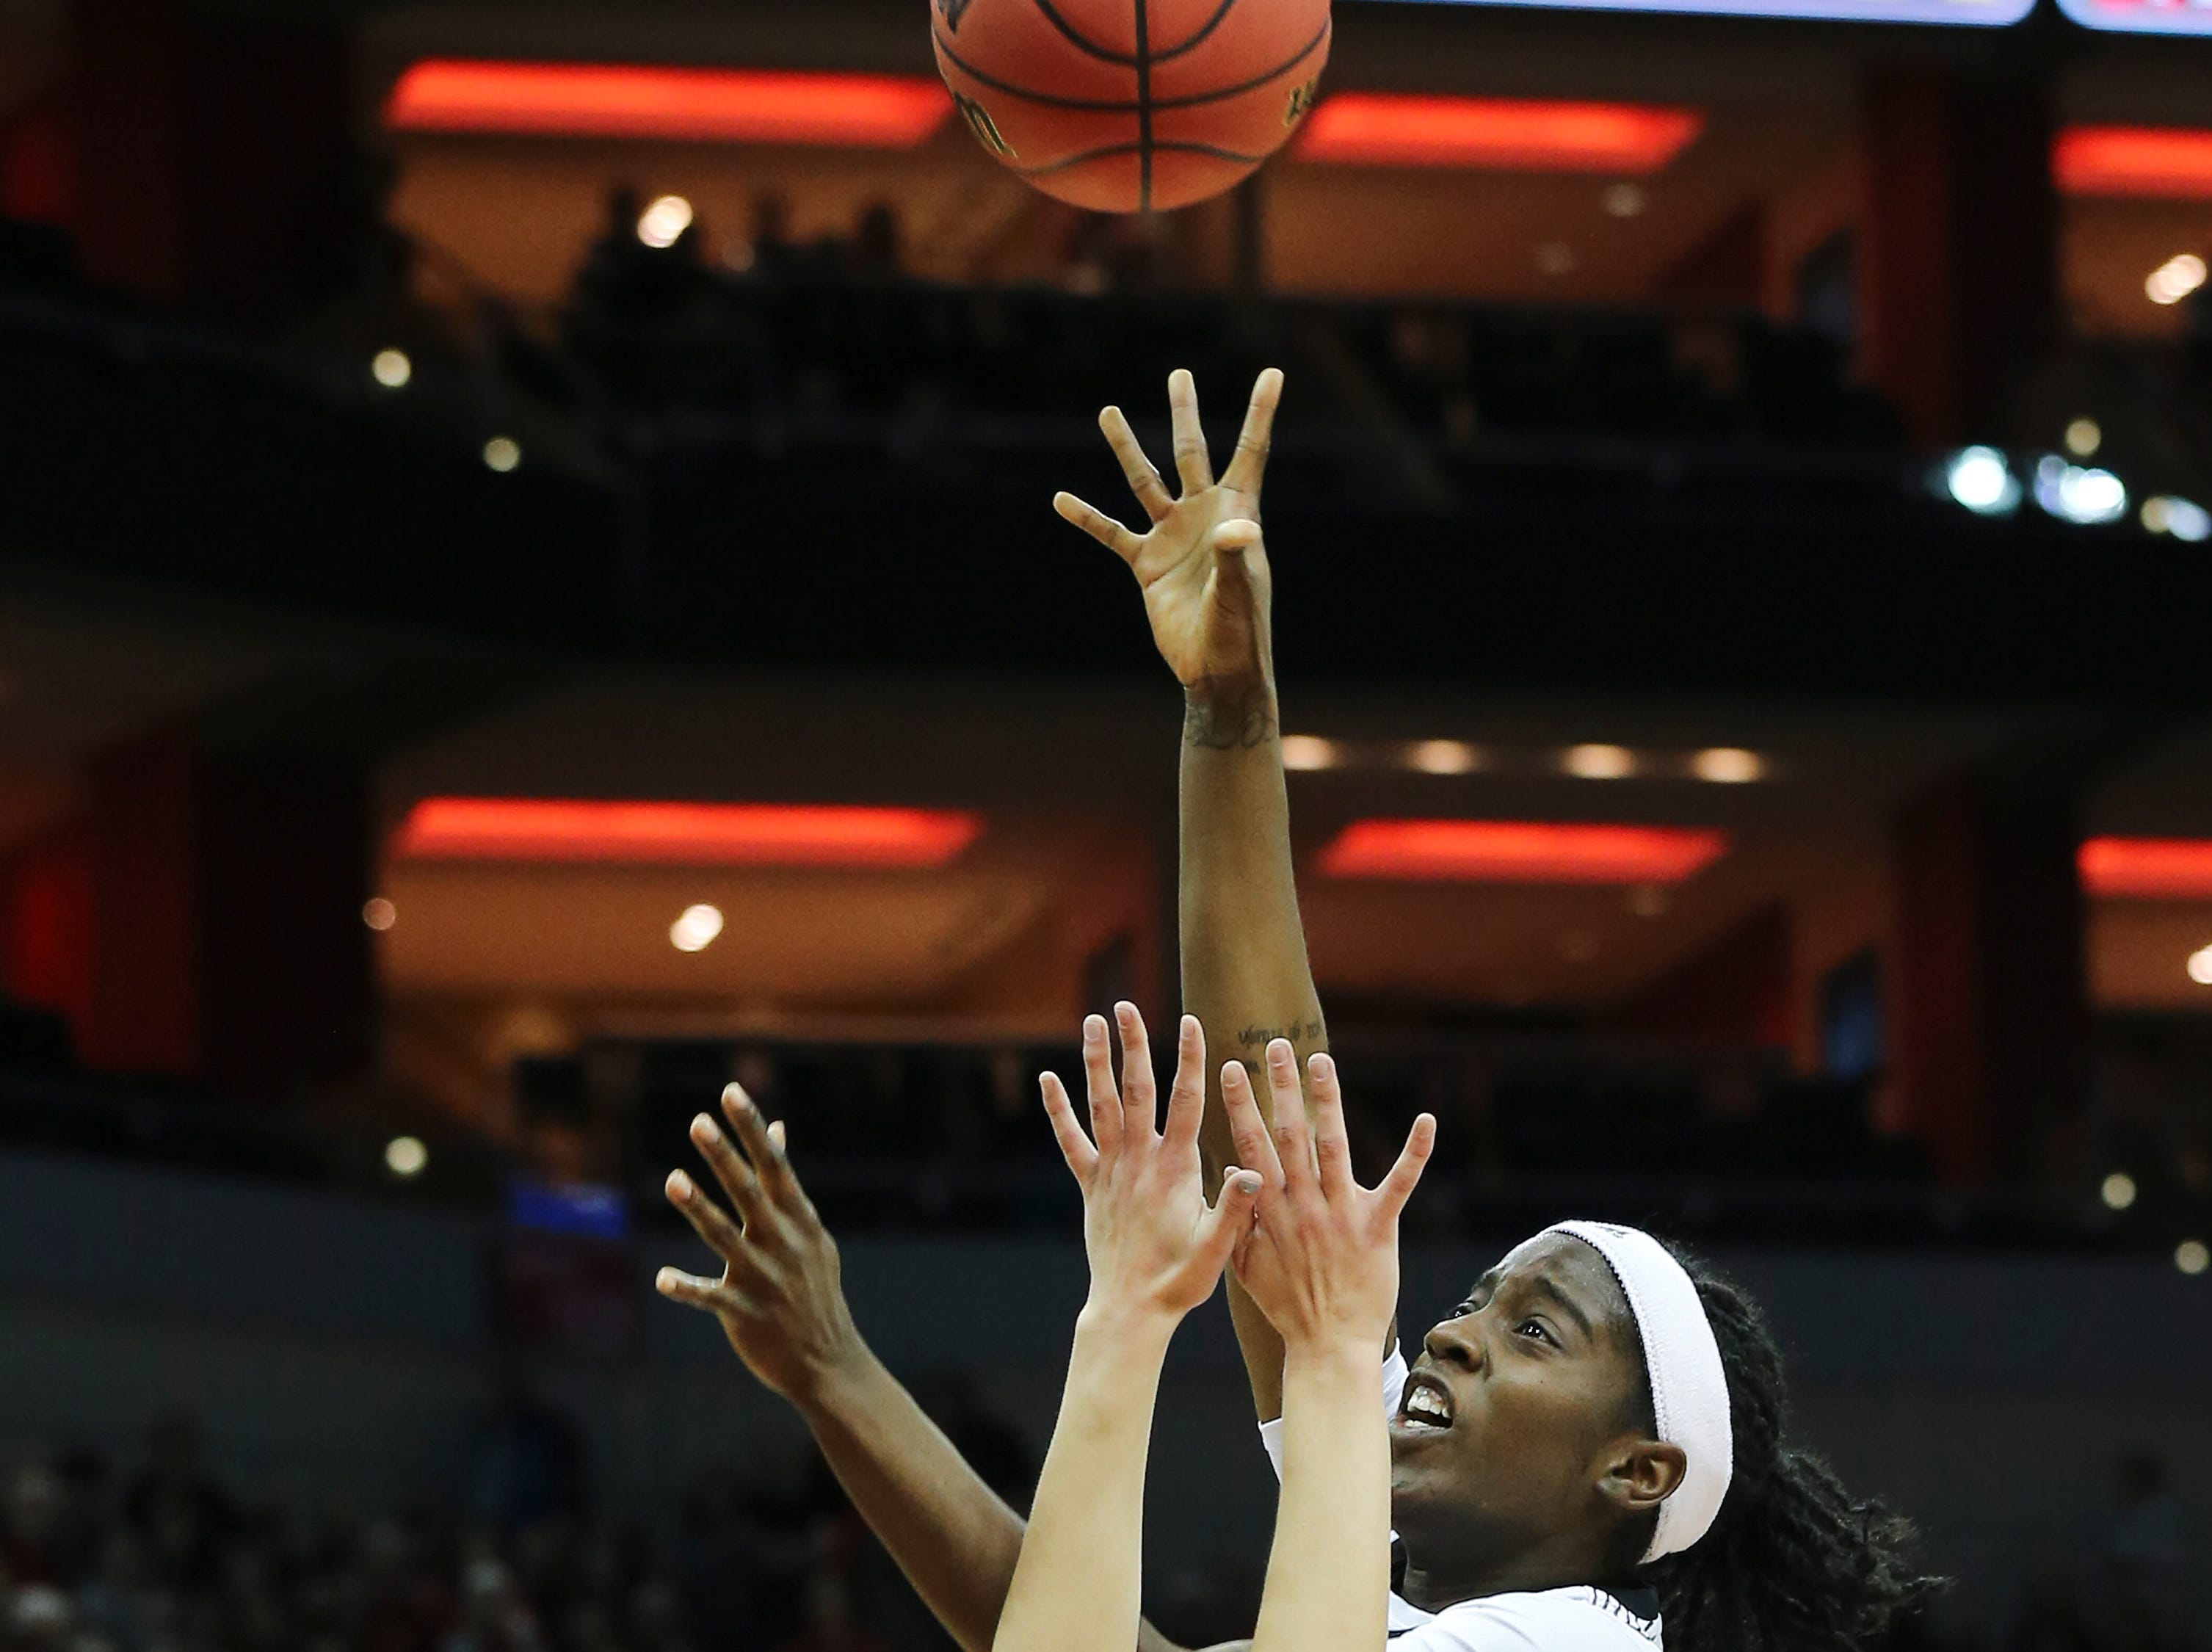 U of L's Jazmine Jones (23) shoots a hook shot against Michigan's Amy Dilk (1) during the second round of their NCAA Tournament game at the Yum Center.Mar. 24, 2019